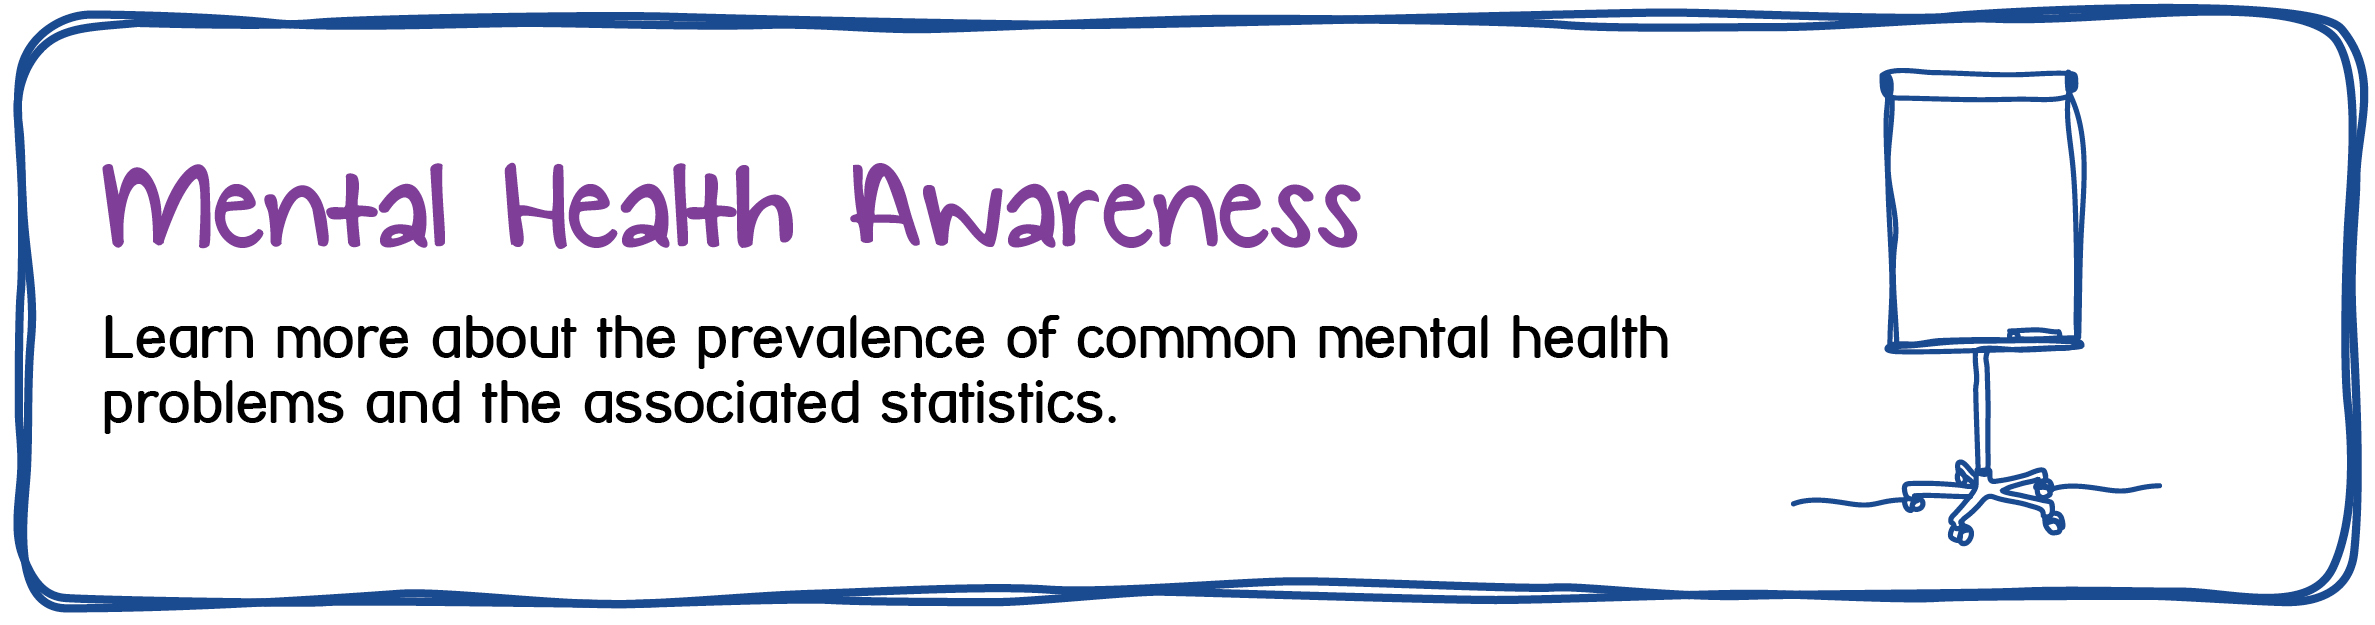 Mental Health Awareness - Learn more about the prevalence of common mental health problems and the associated statistics.